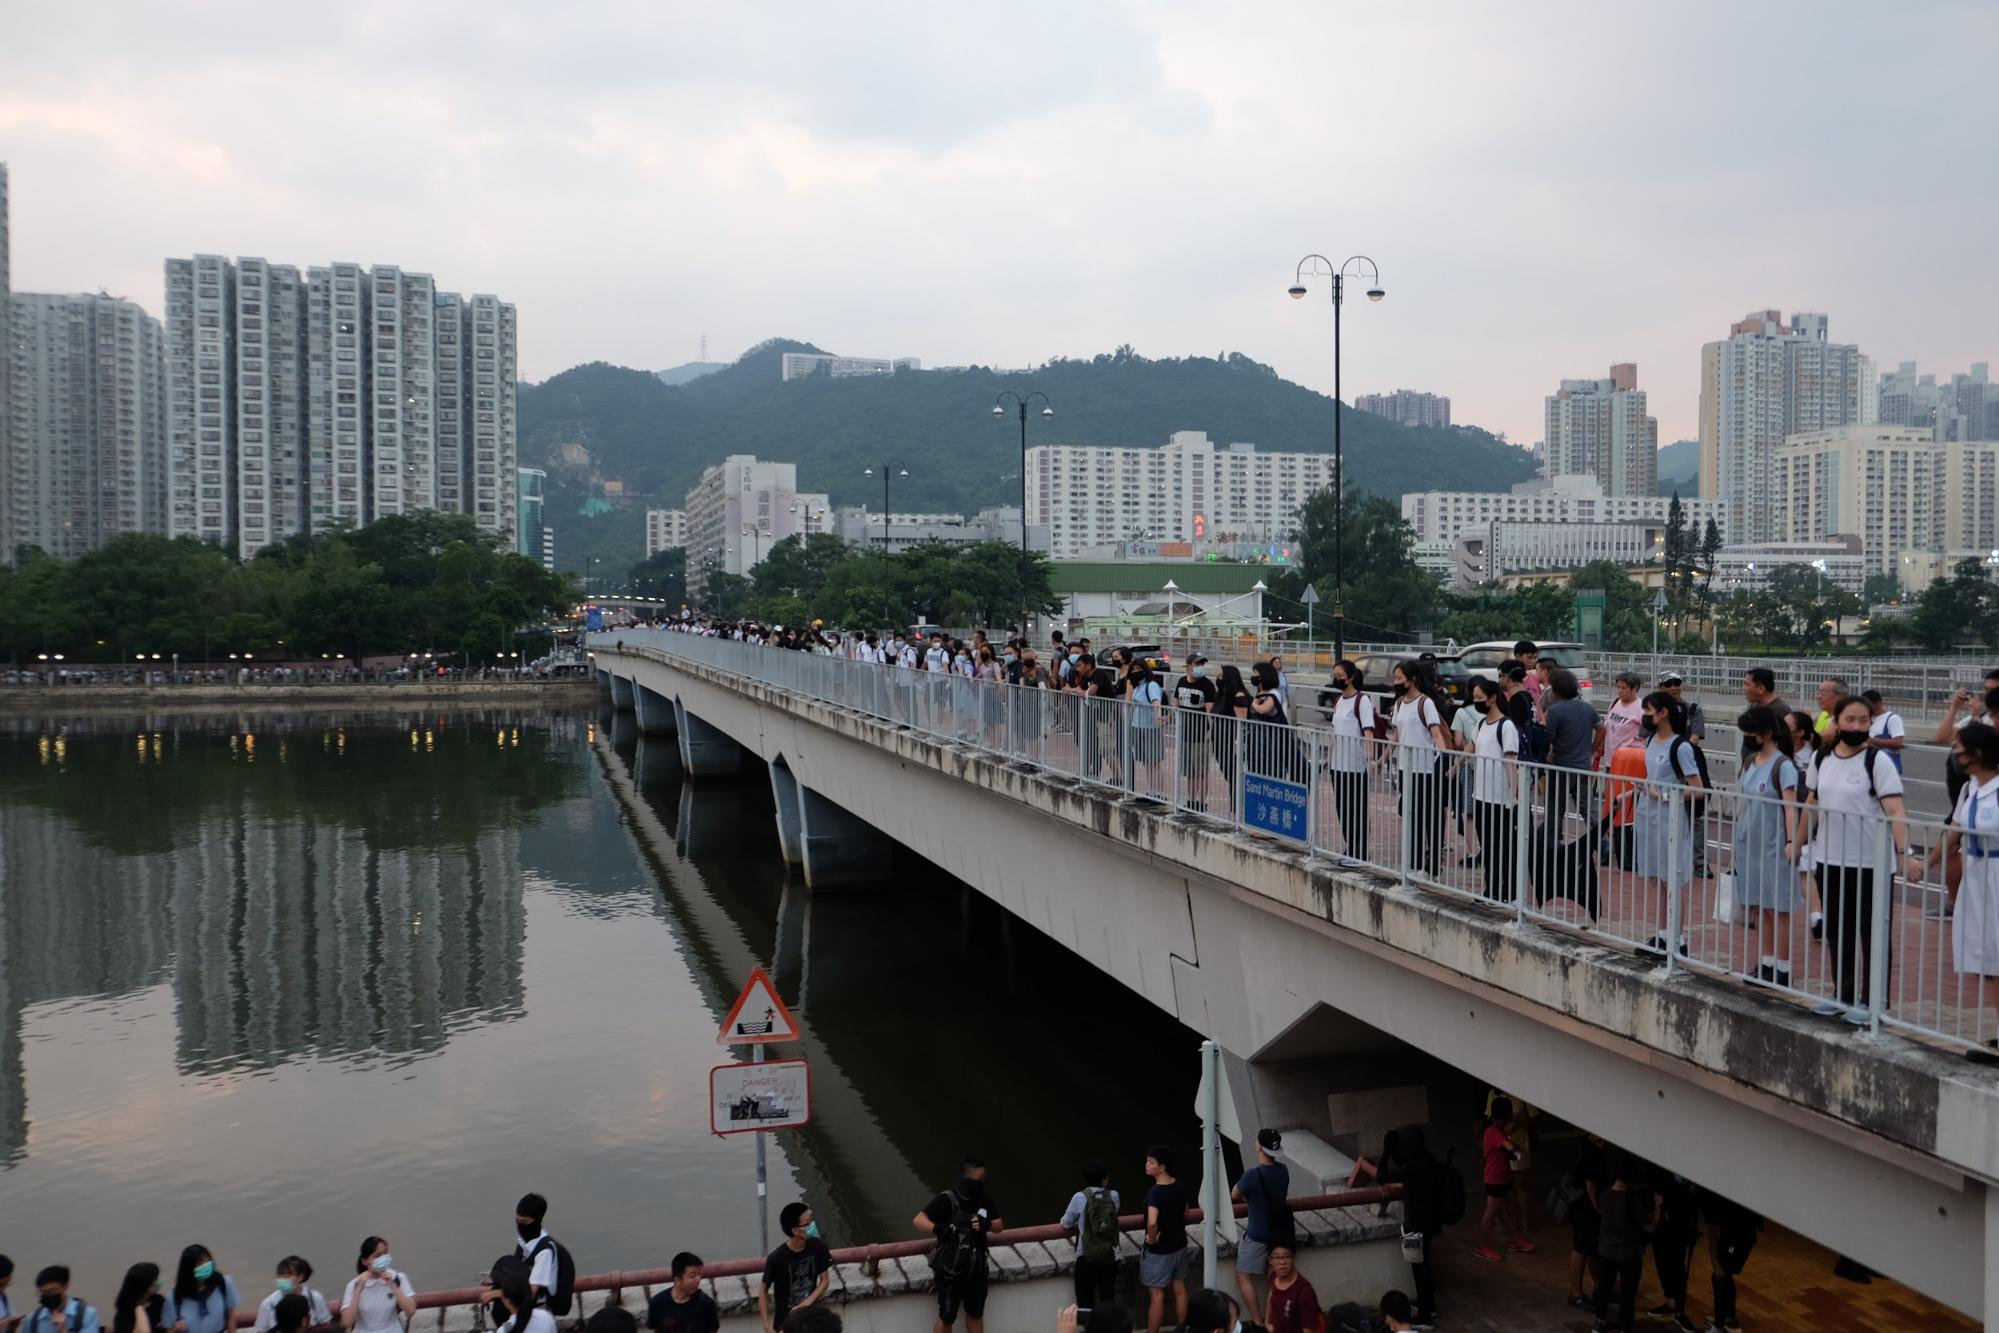 Hundreds of students voluntarily gathered around Shing Mun River to voice their frustration with the Hong Kong government. Picture by Hubert Leong.